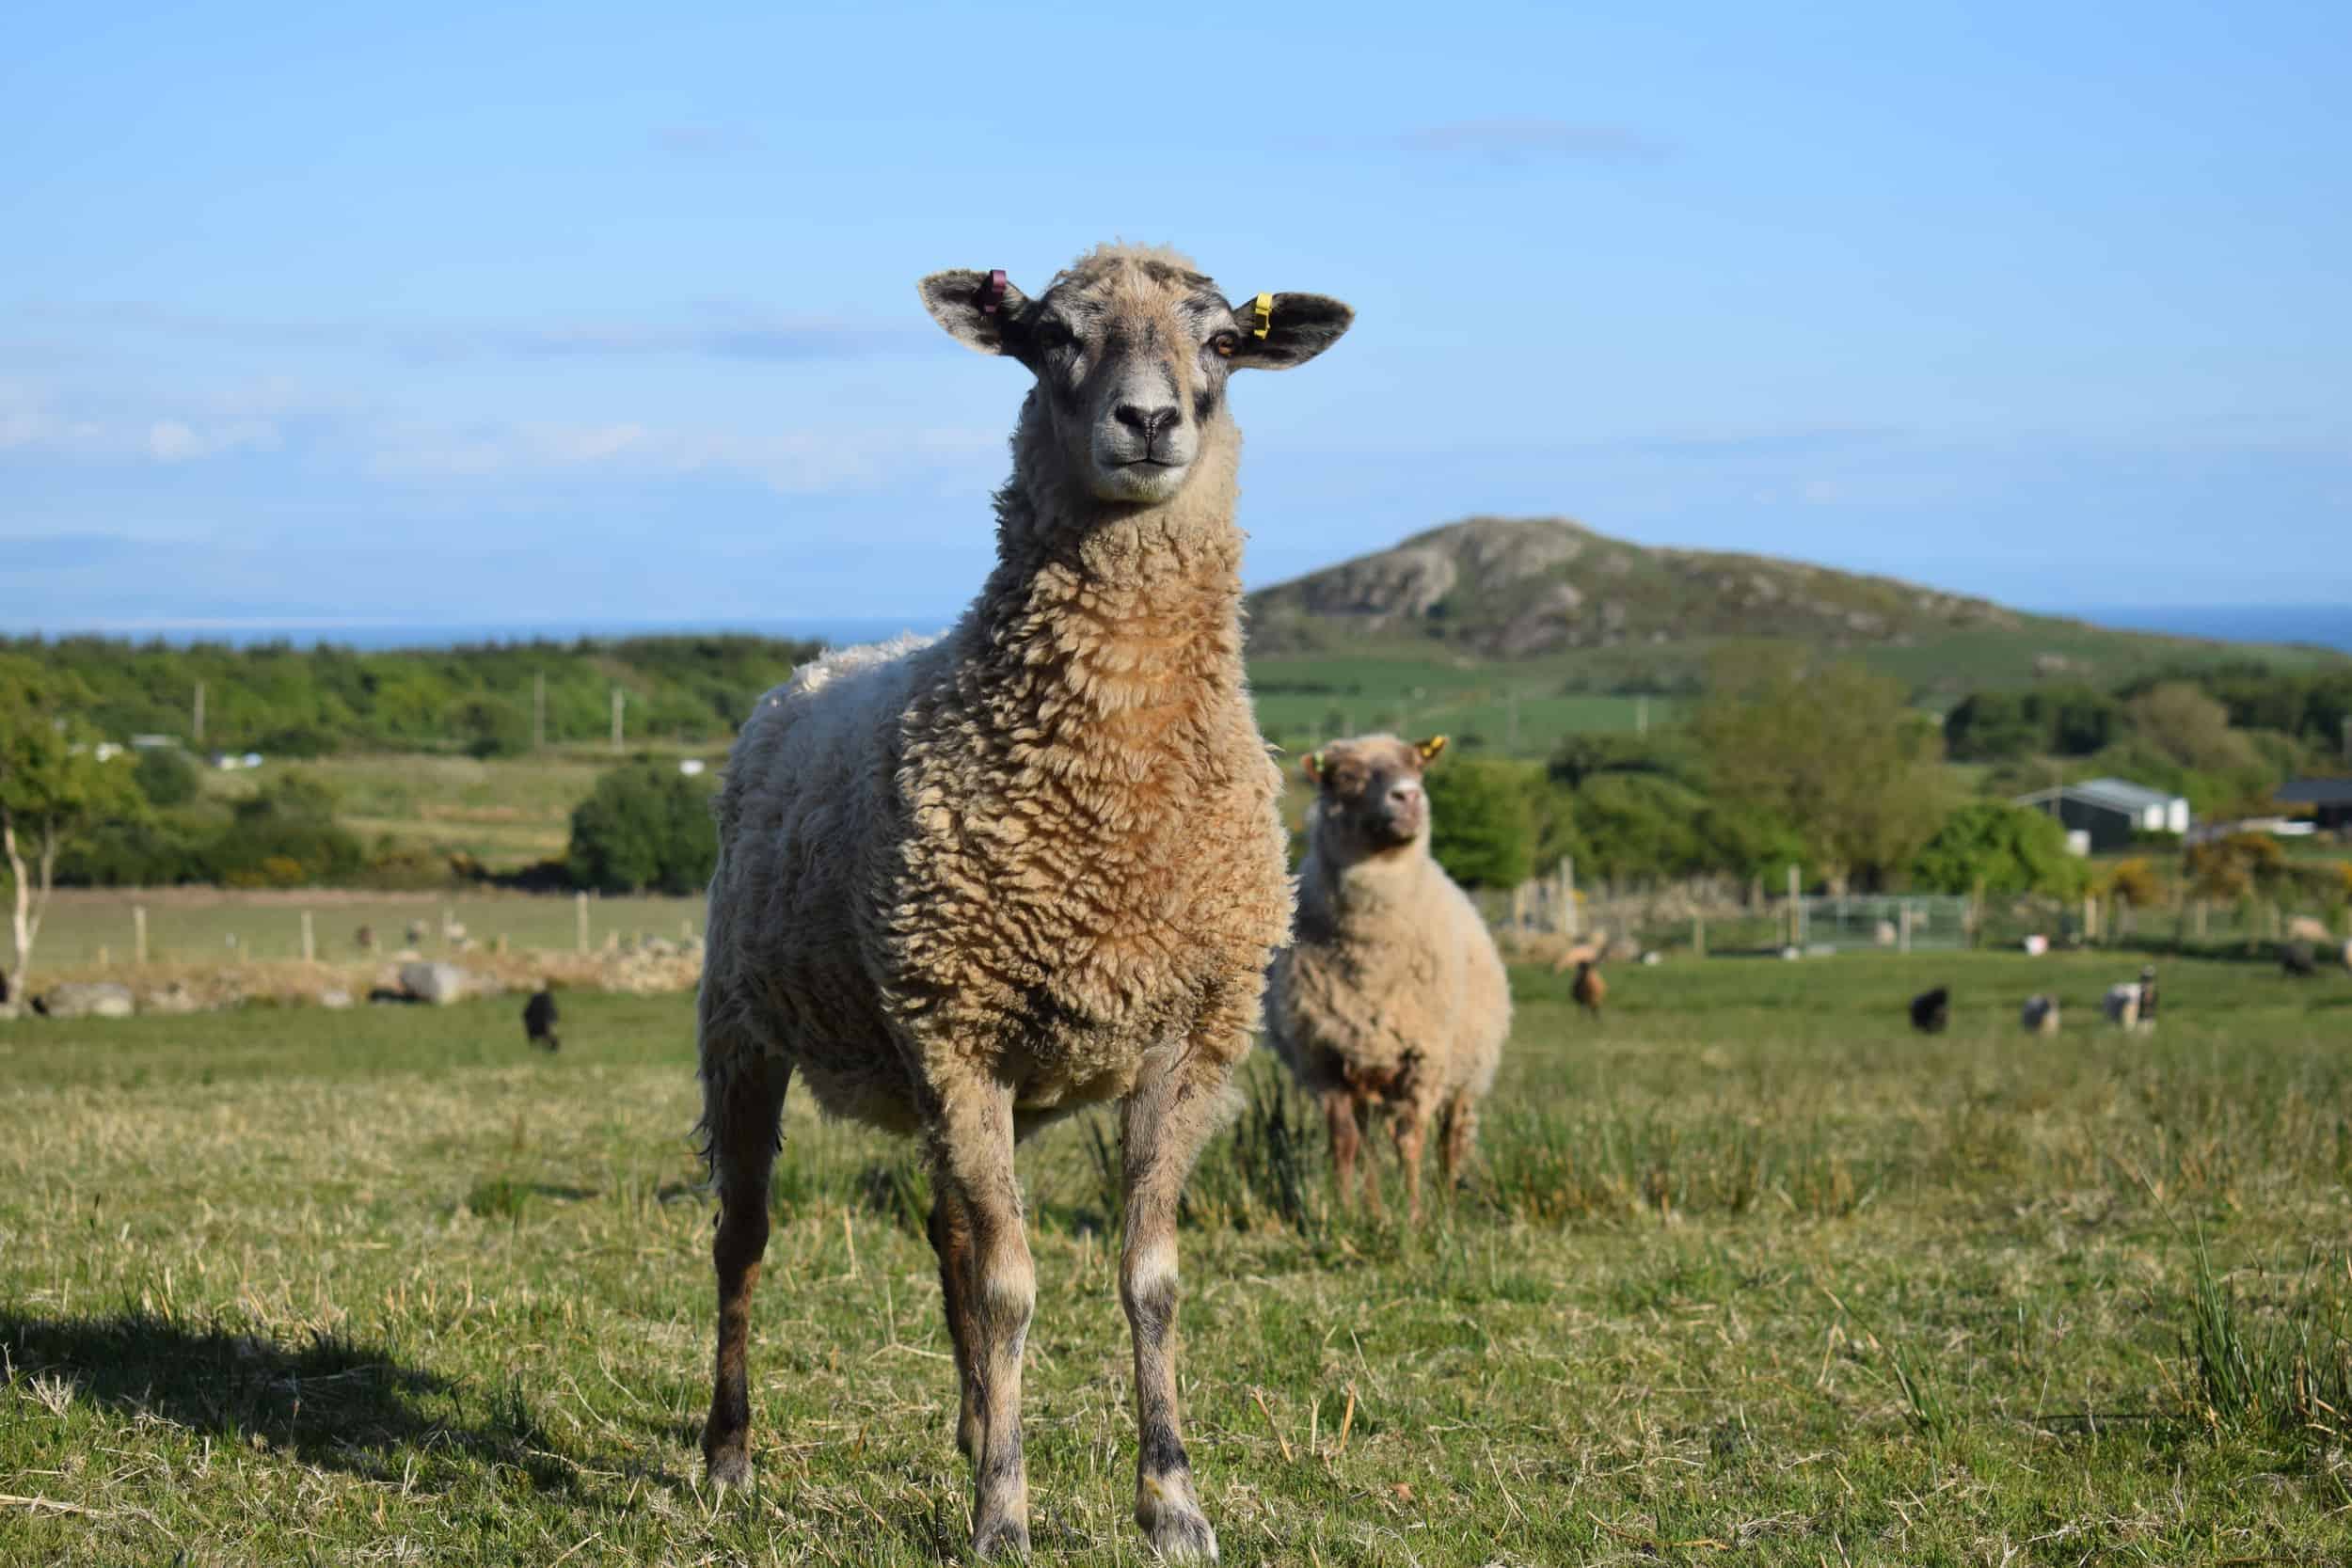 jemima crossbreed sheep beautiful ewe coloured leicester longwool cross gotland shetland sheep